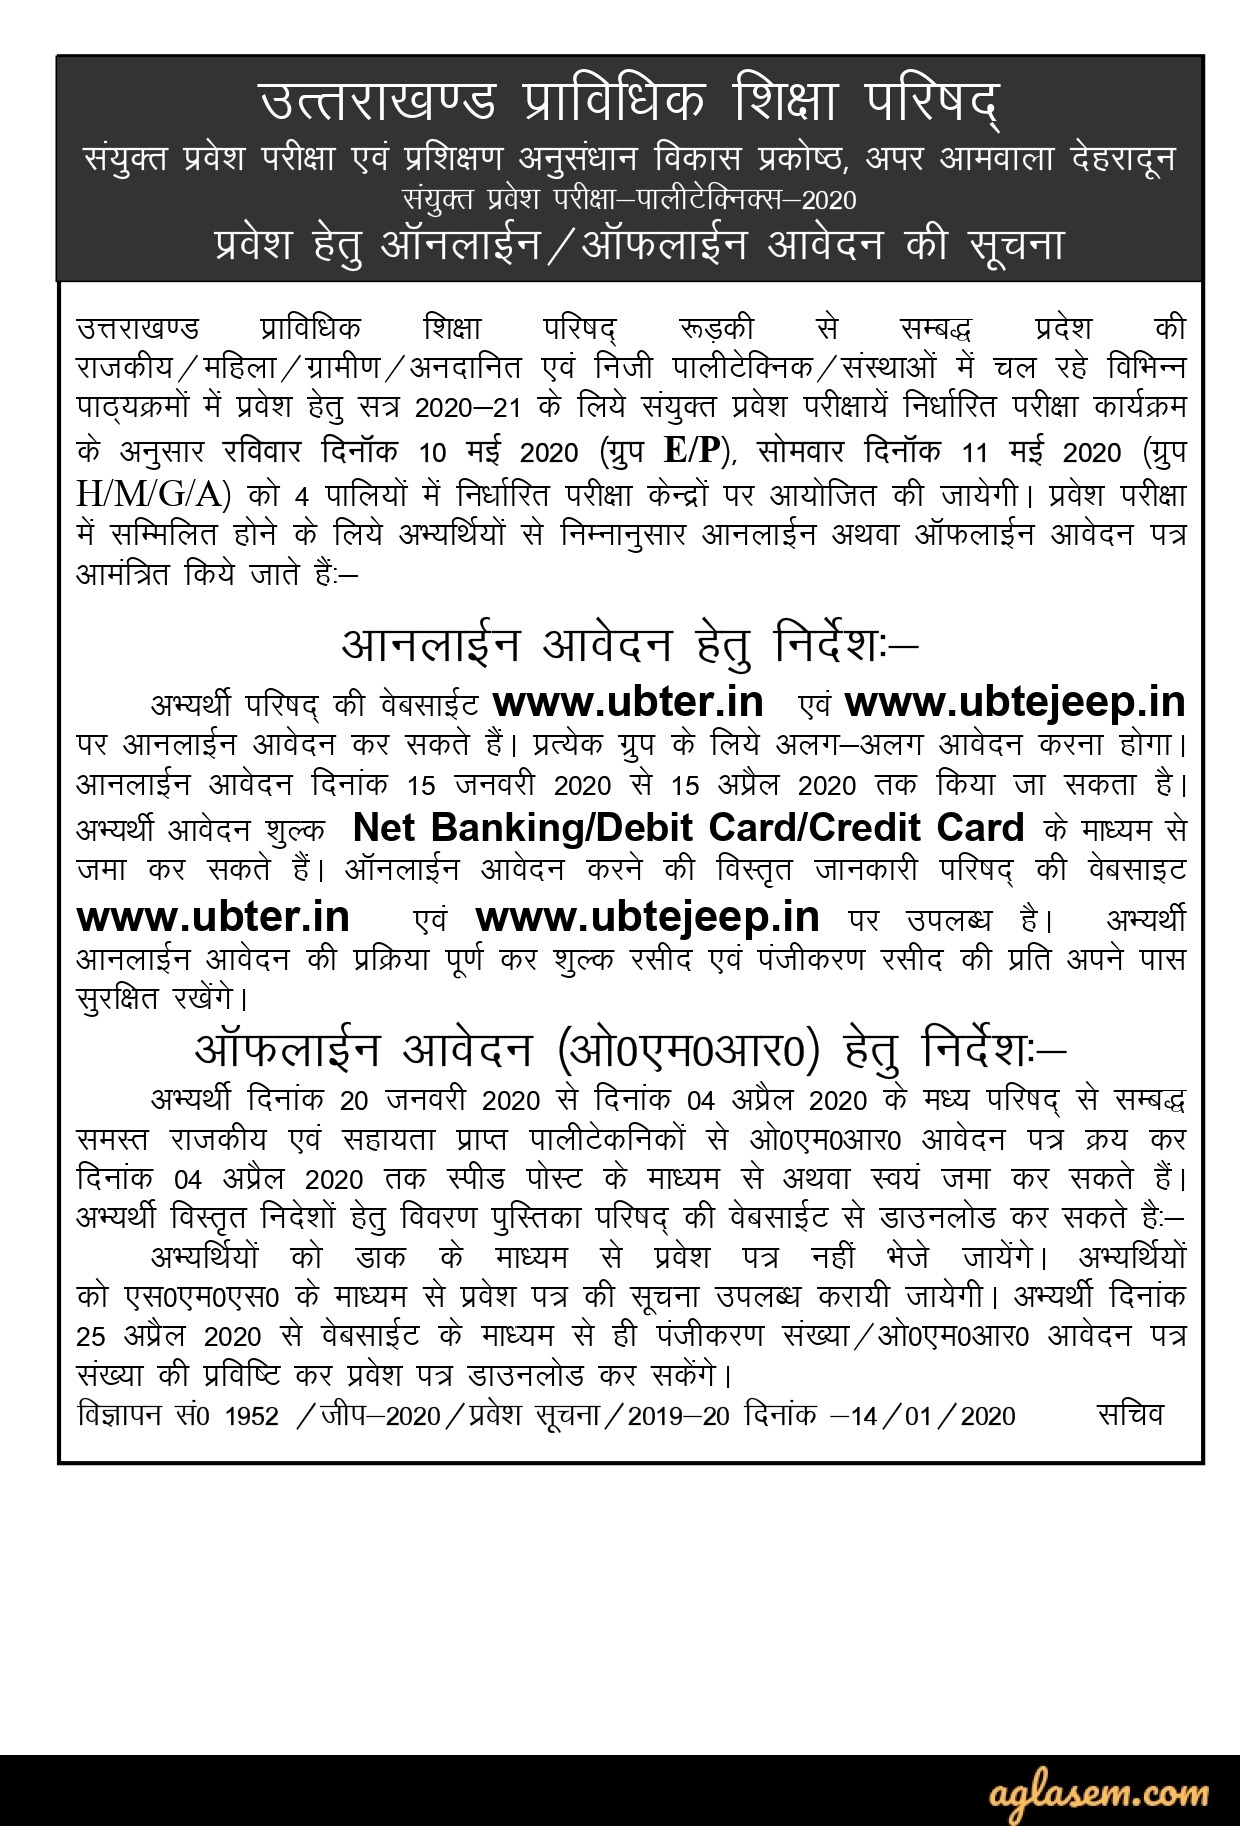 UBTER JEEP 2020 Application Form Release Notice